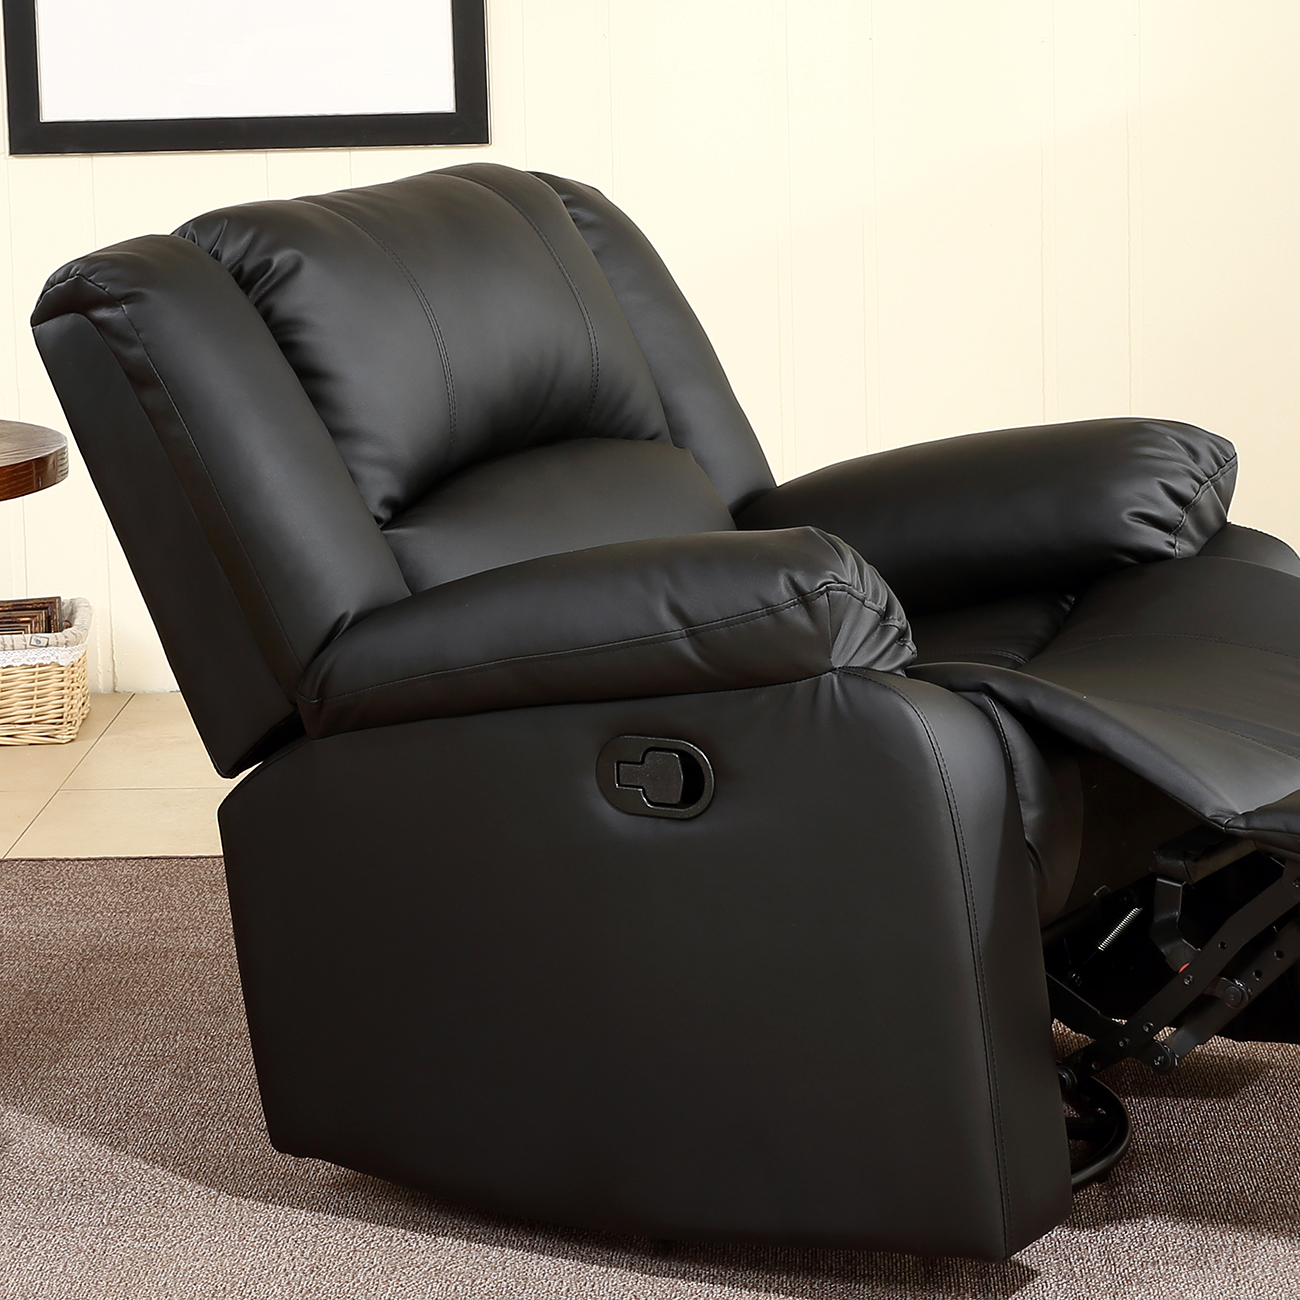 Ordinaire Recliner And Rocking Swivel Black Plush Over Stuffed Faux Leather Comfy  Chair